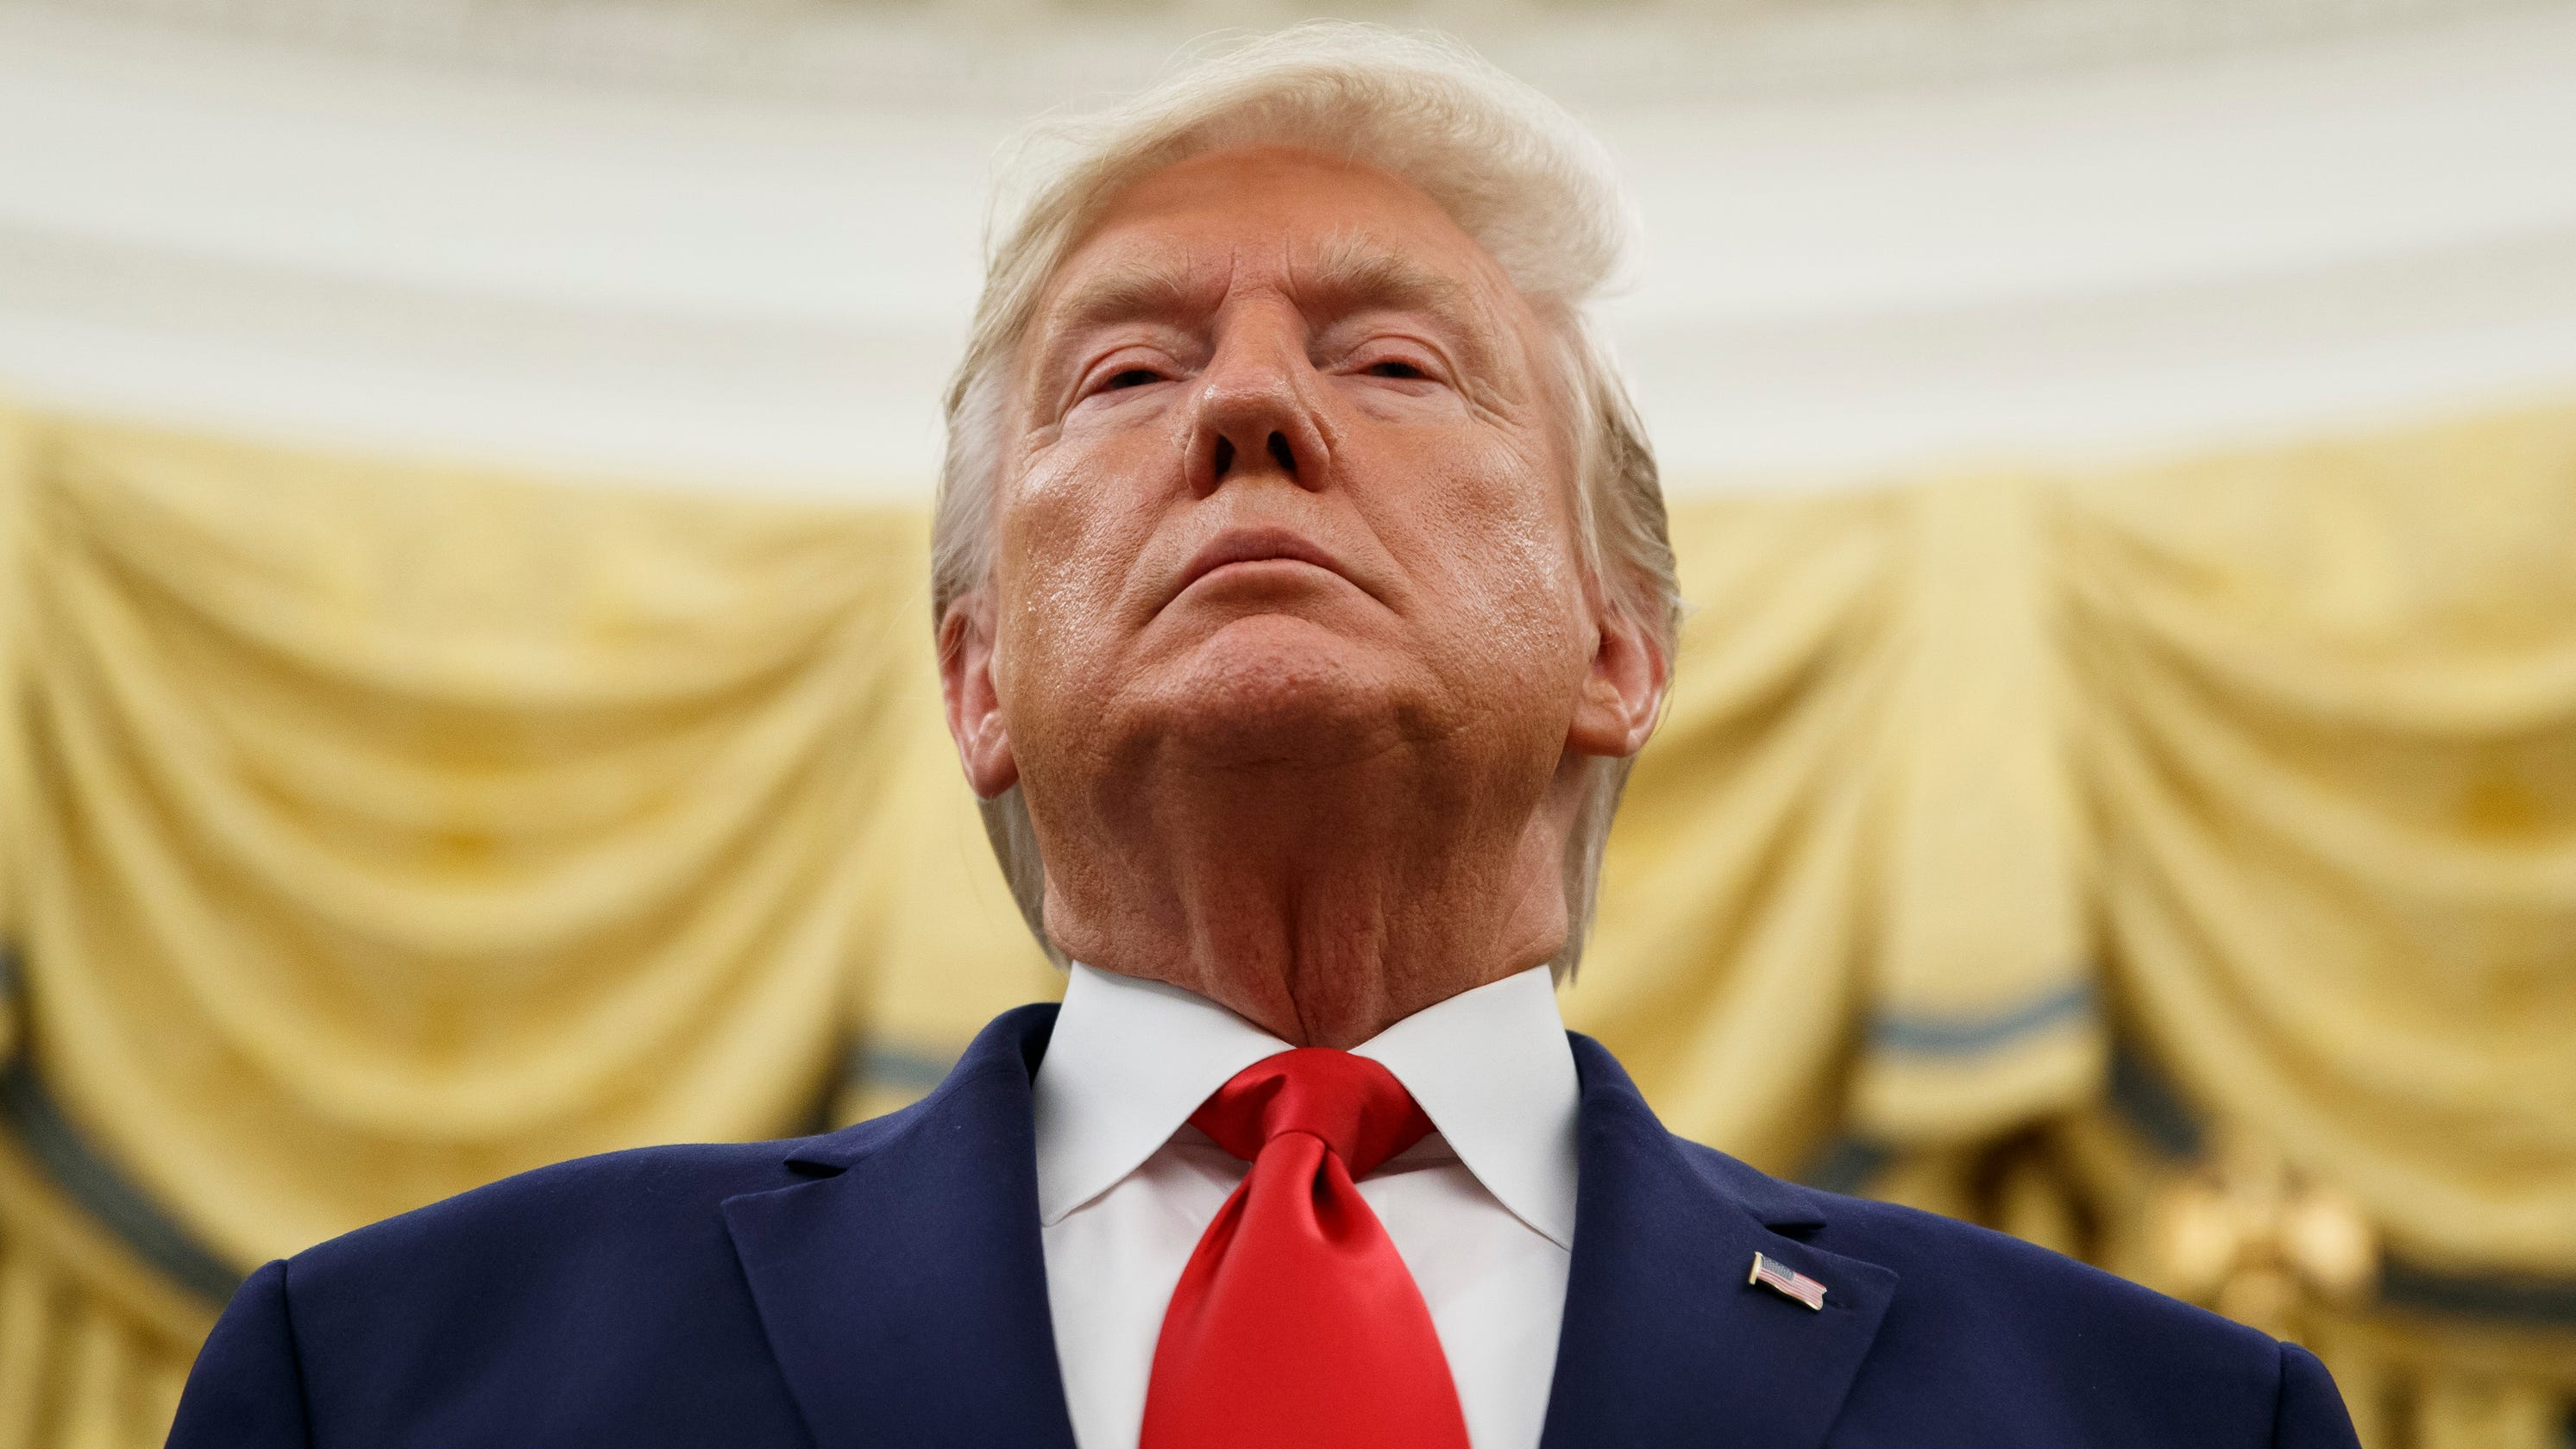 As Trump, allies try to out the whistleblower, that person may learn the high price federal employees pay for speaking out